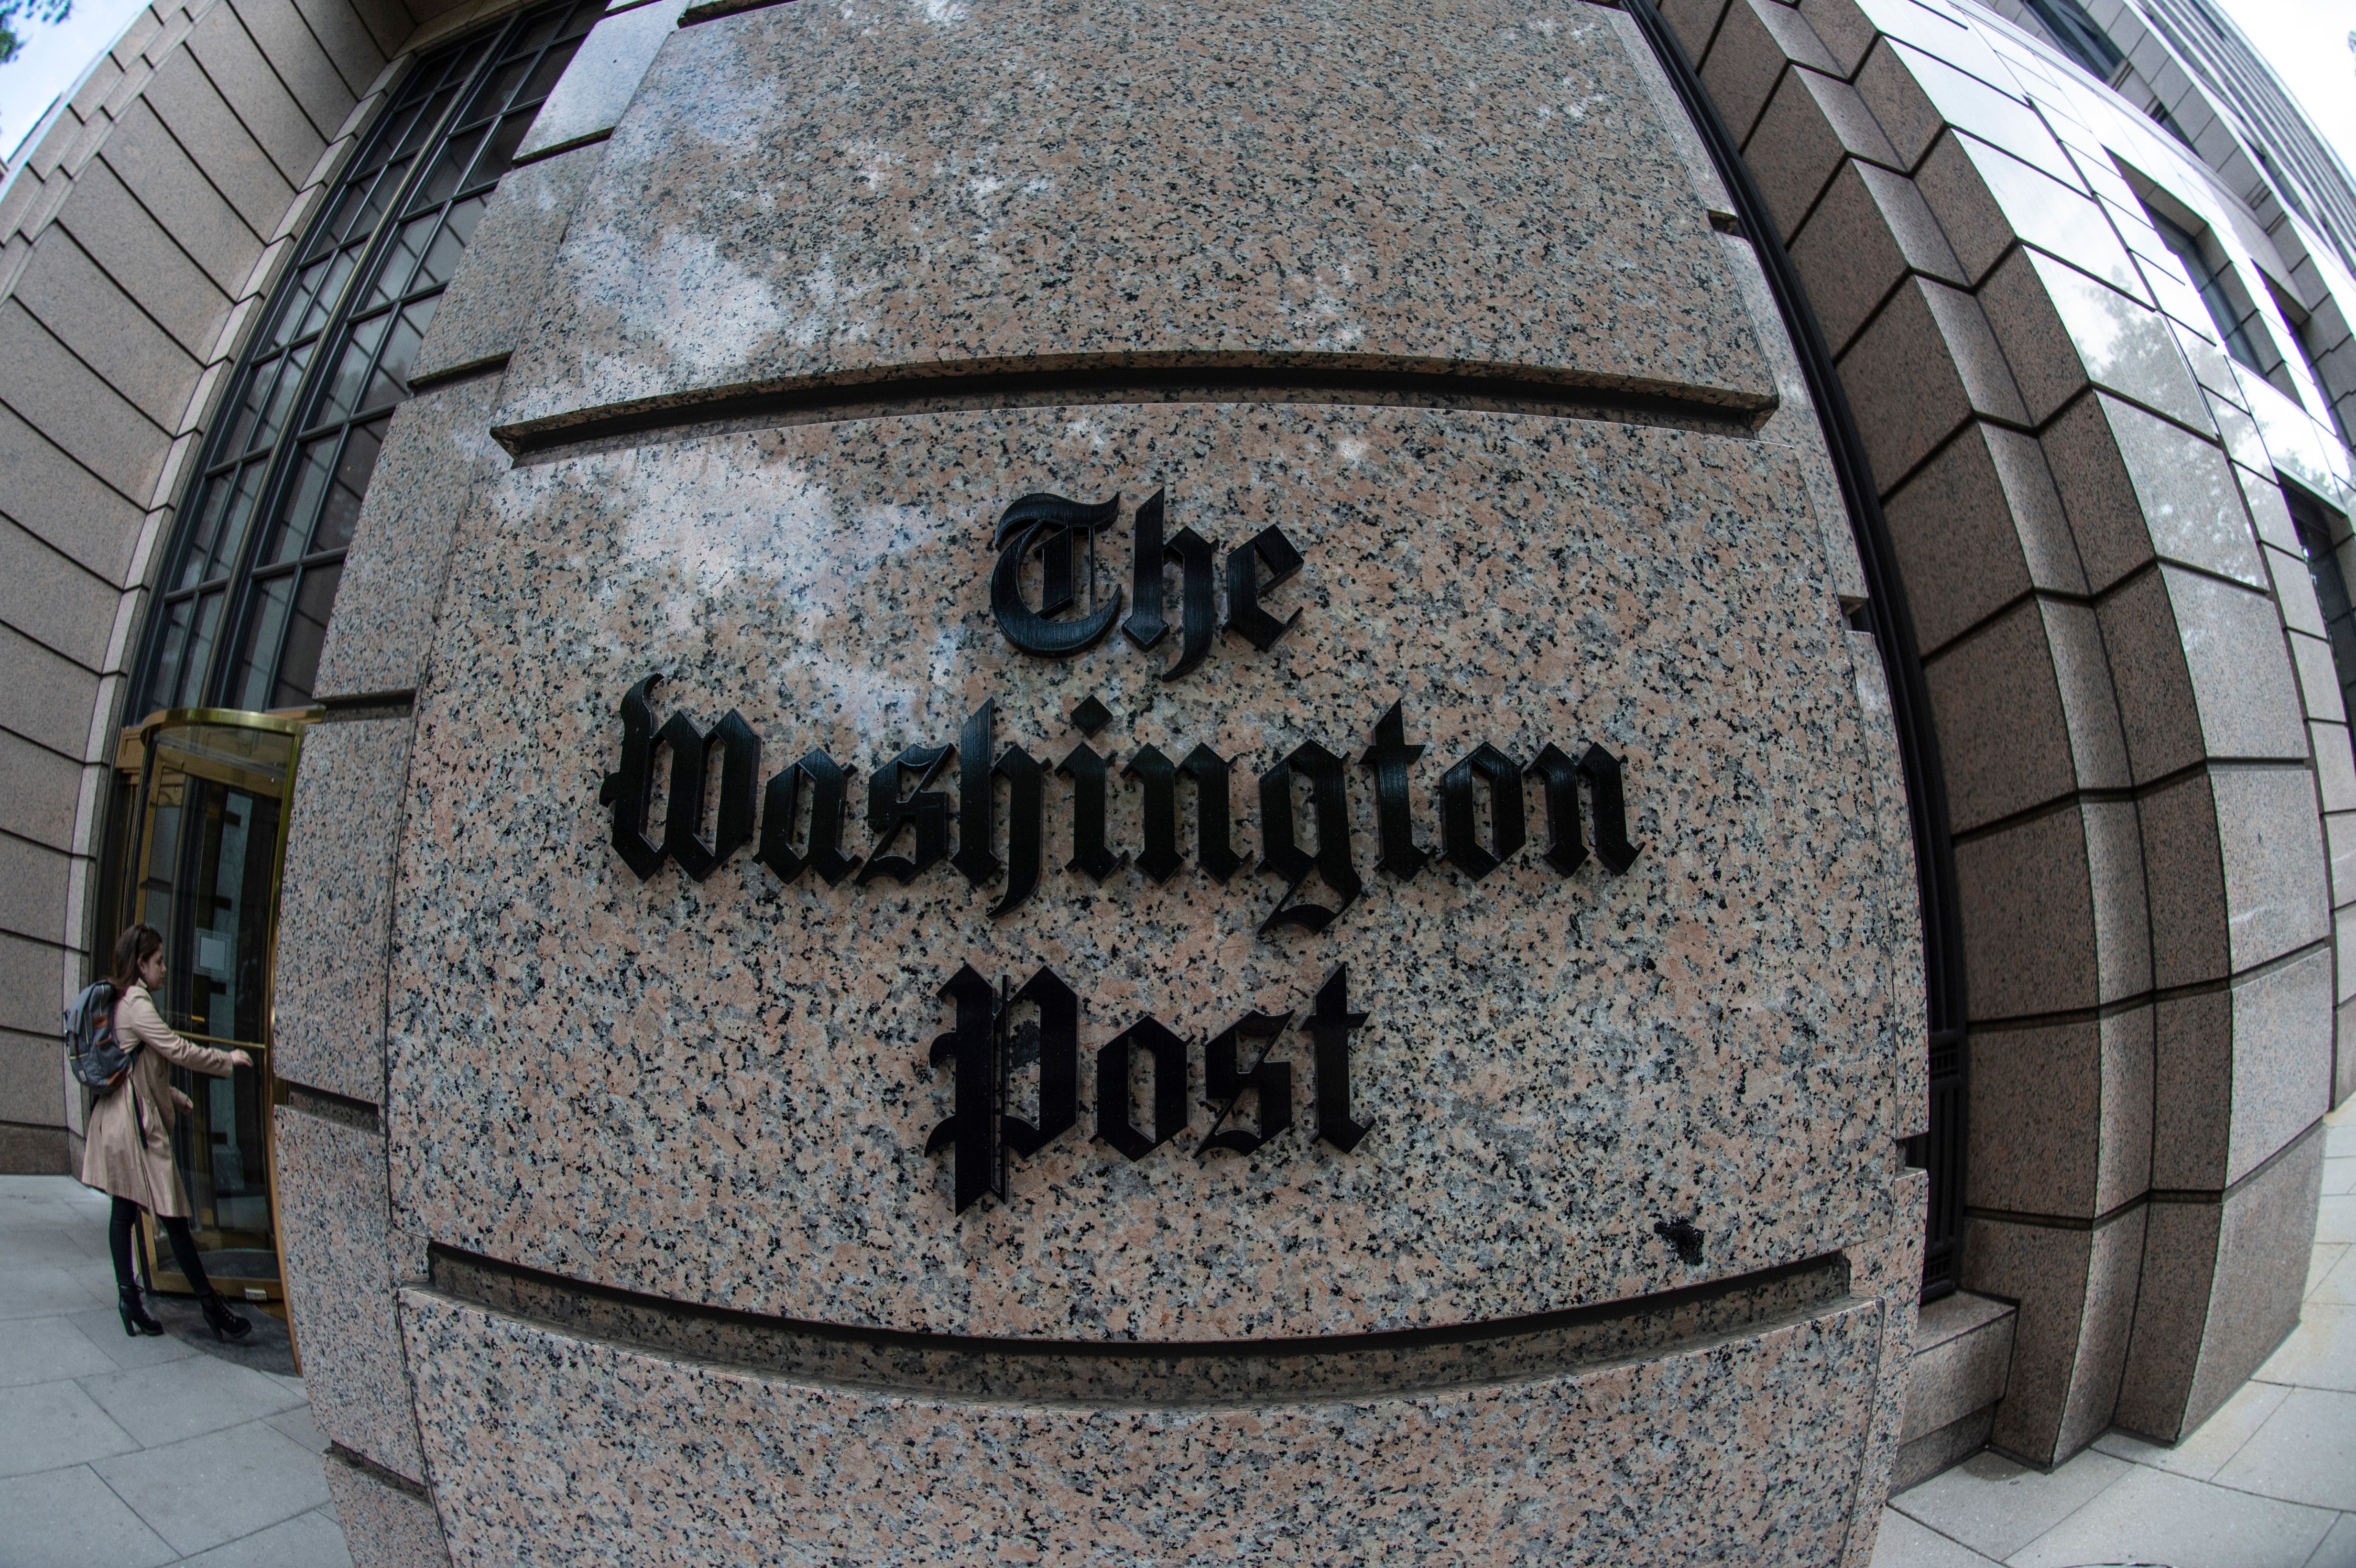 The Washington Post building.